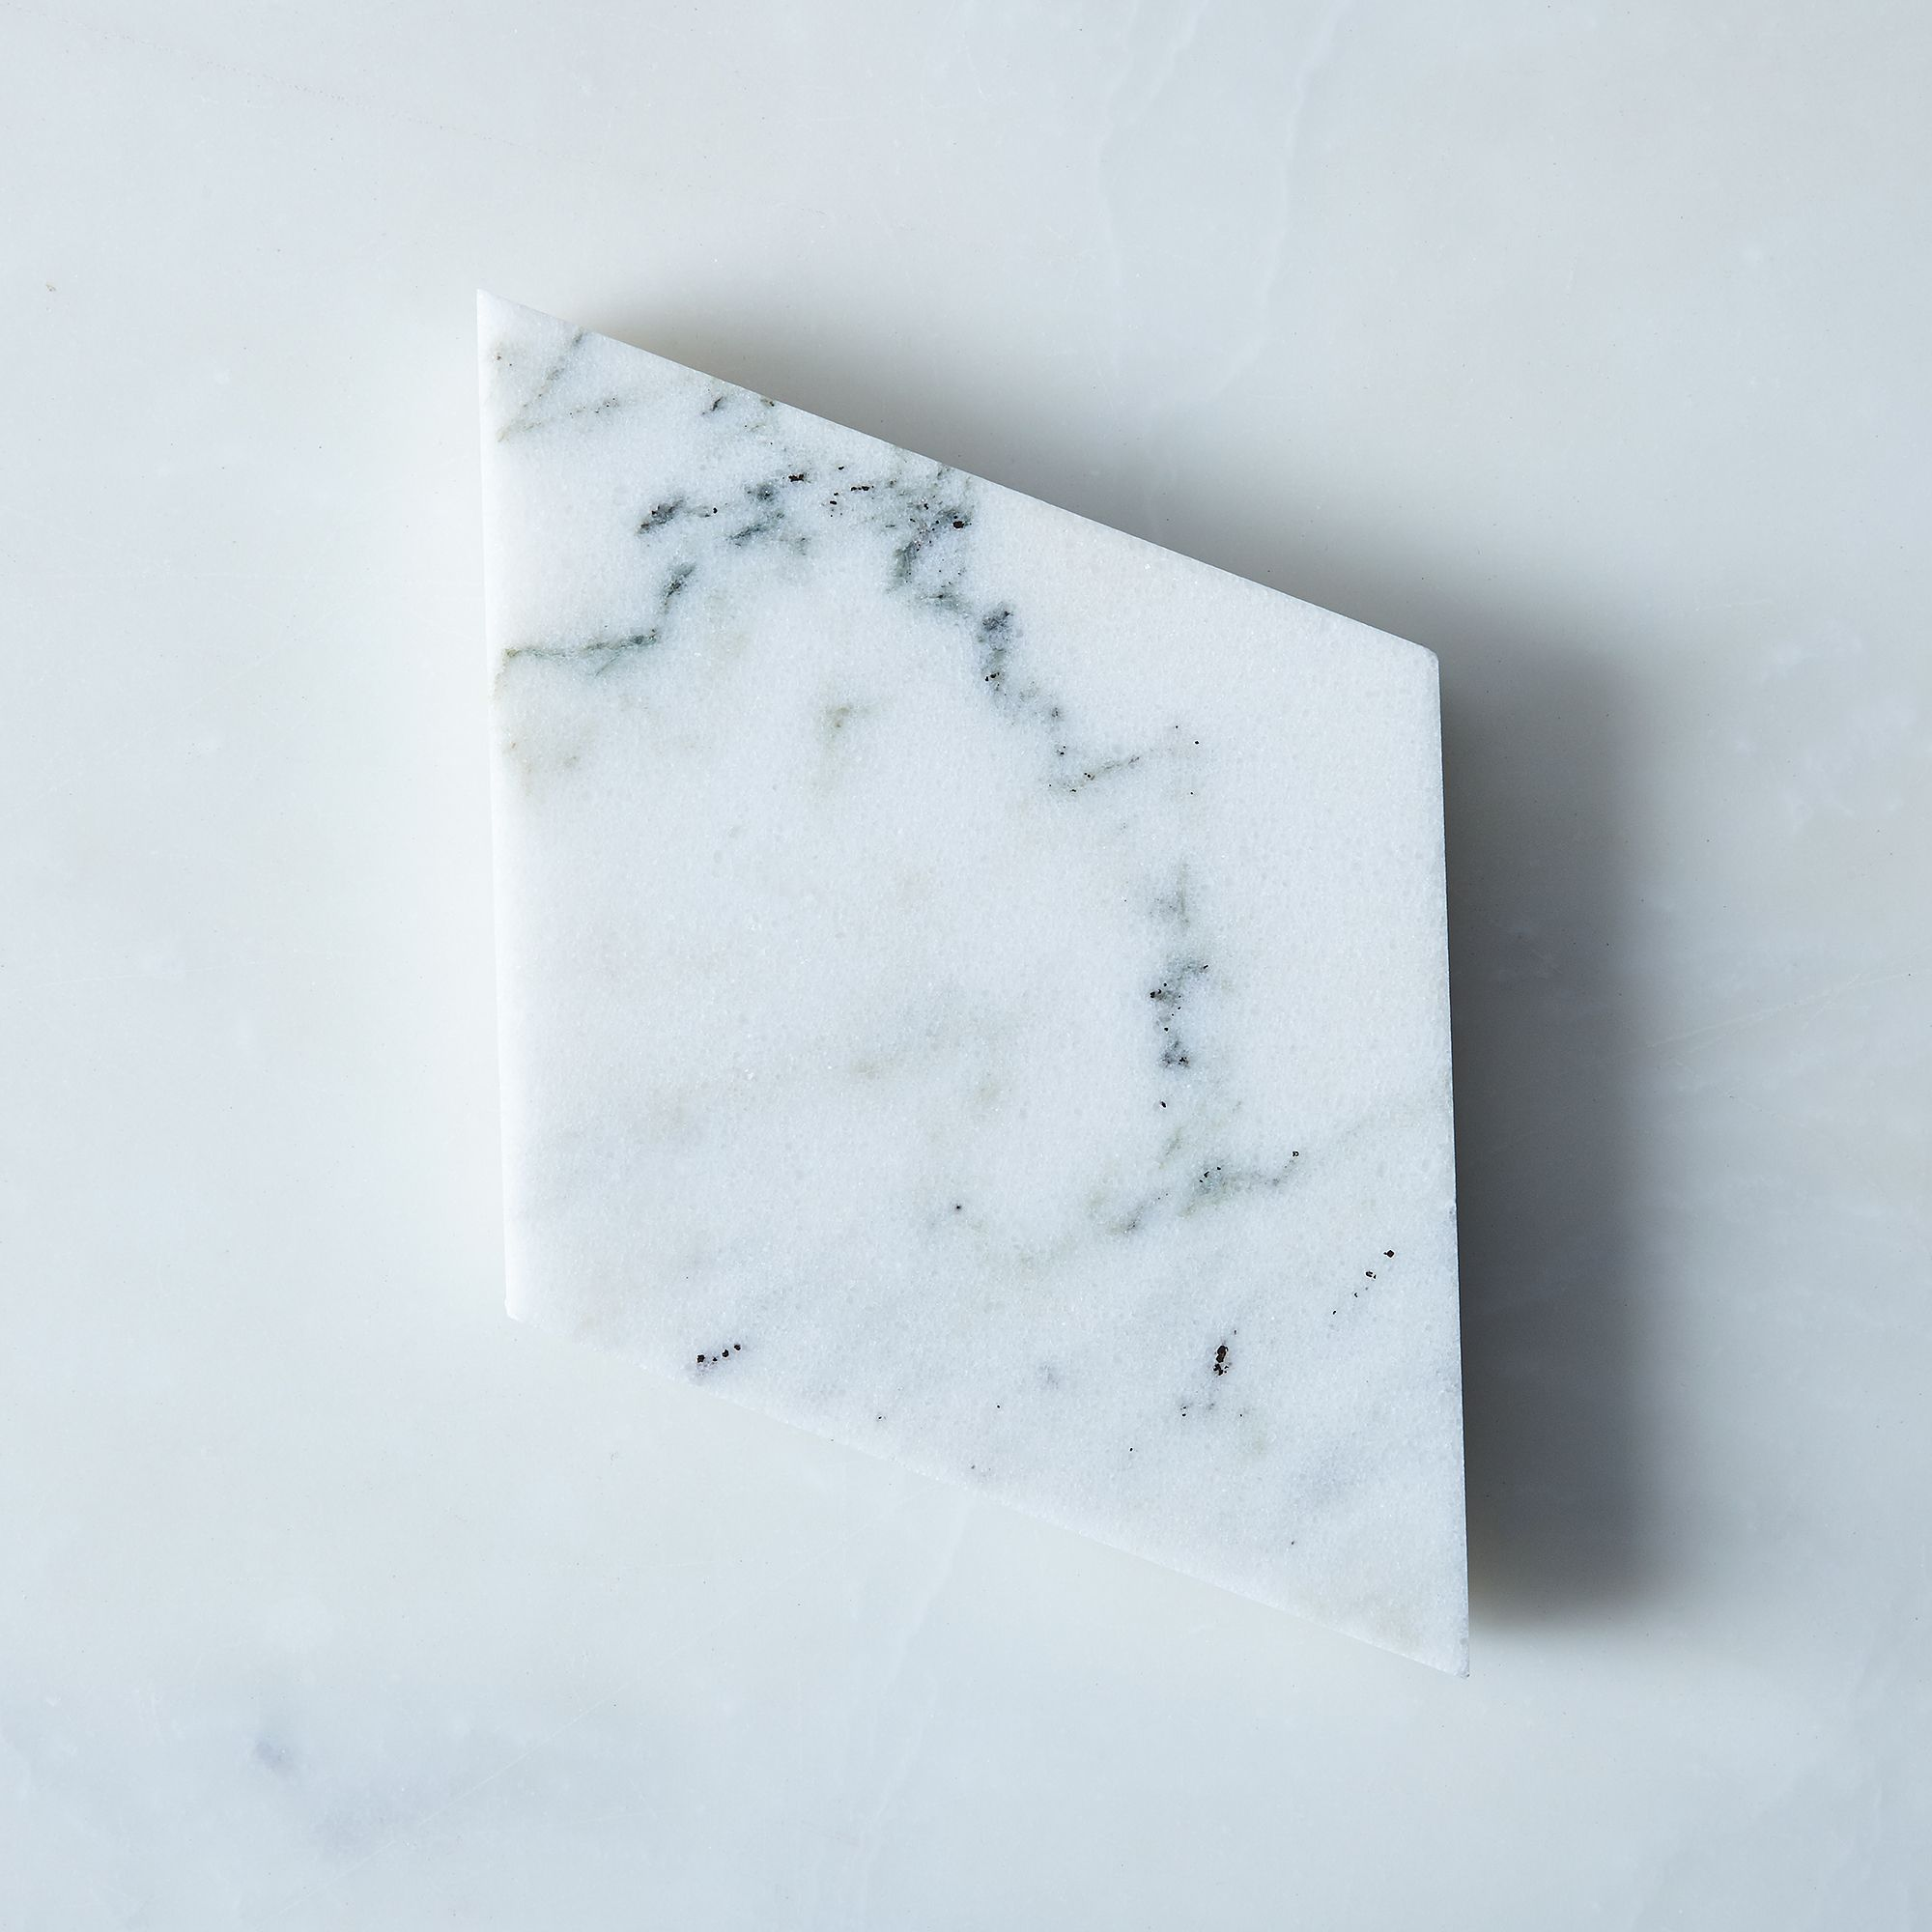 B22554d7 0002 40c9 94af baba840d766a  2016 1111 madewell vermont lifestyle modular marble trivet cheese board silo rocky luten 0006